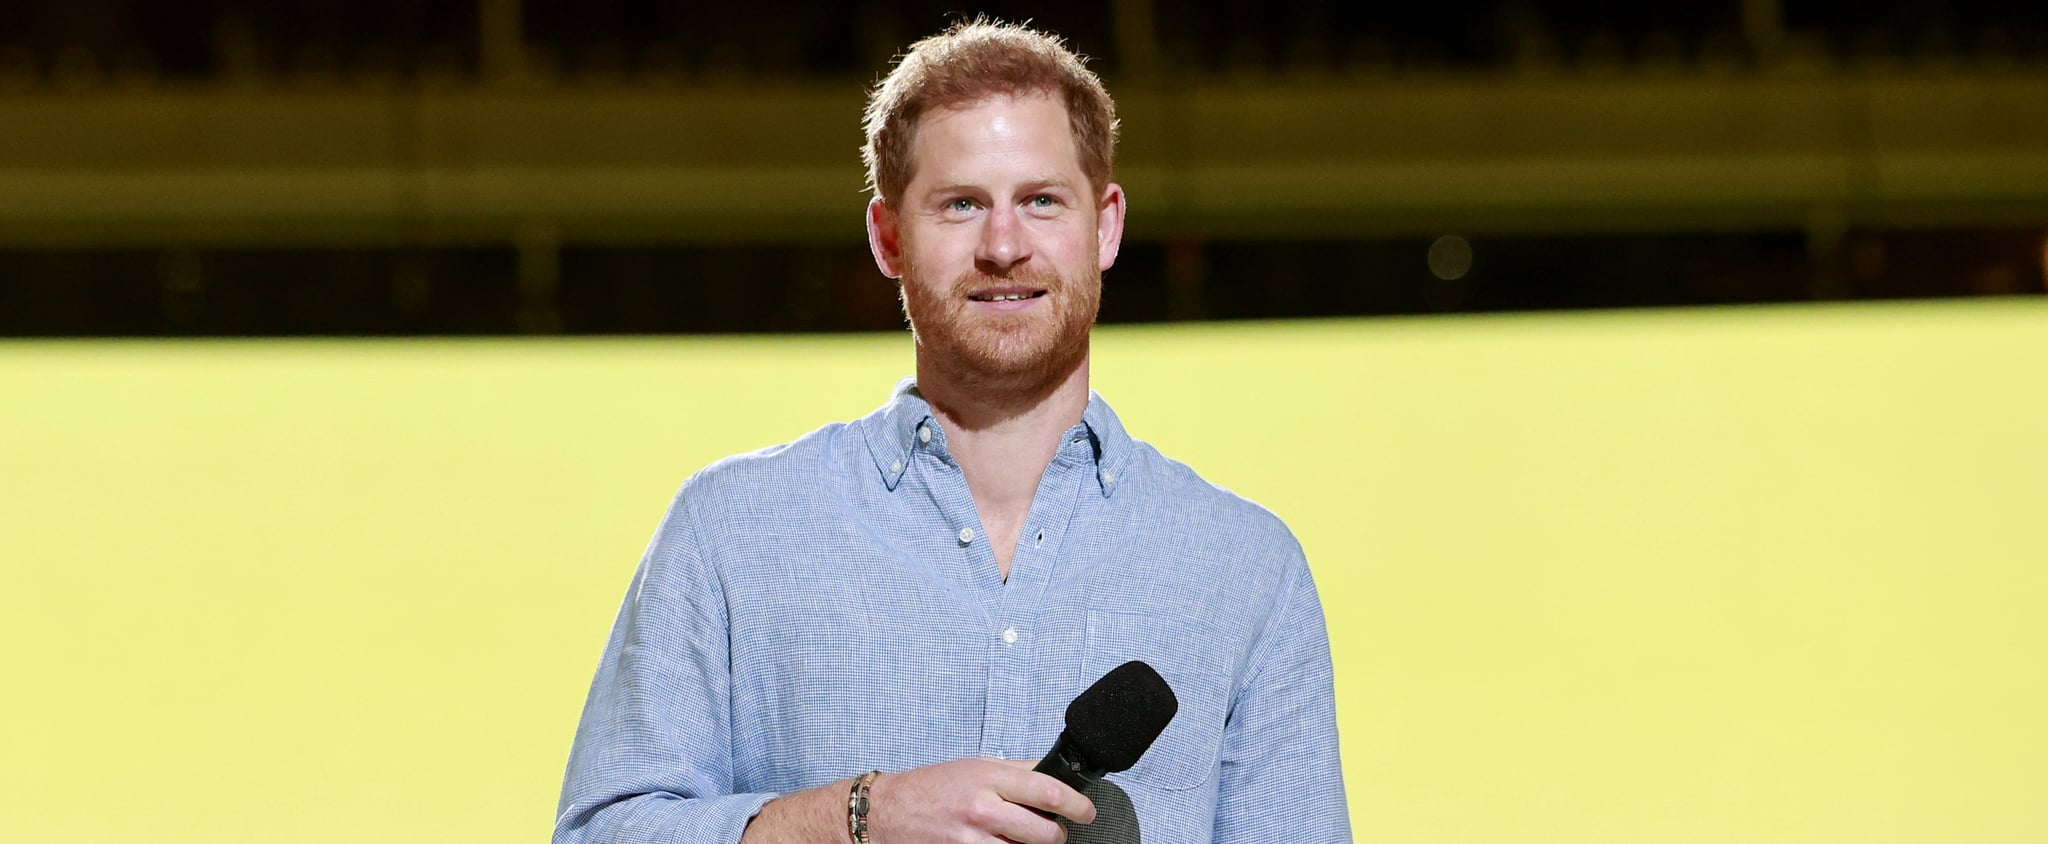 Prince Harry Talks Parenting on Dax Shepard's Podcast